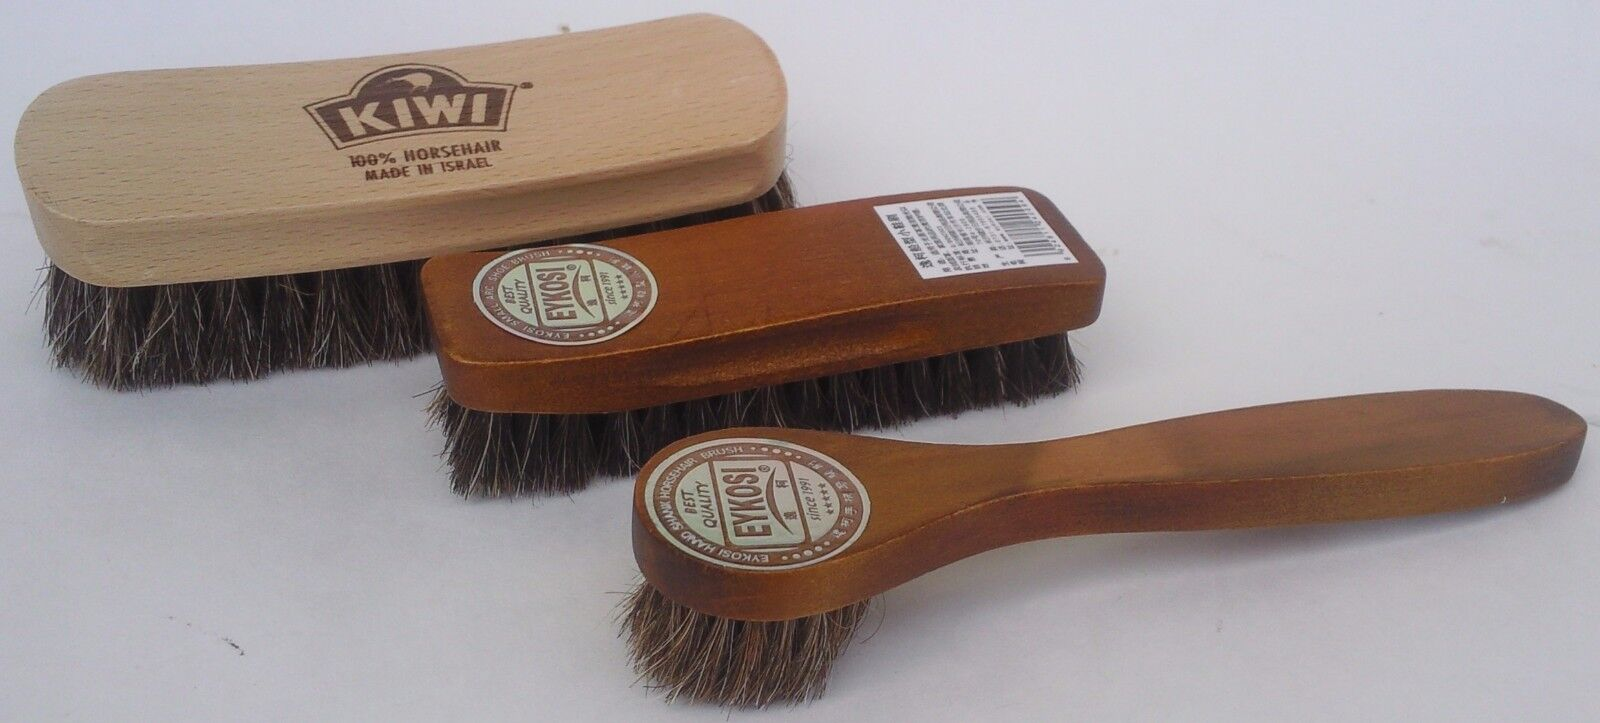 Photo SHOE SHINE BRUSHES & POLISH DAUBER 100% Horsehair Kiwi Eykosi SELECT: Brush